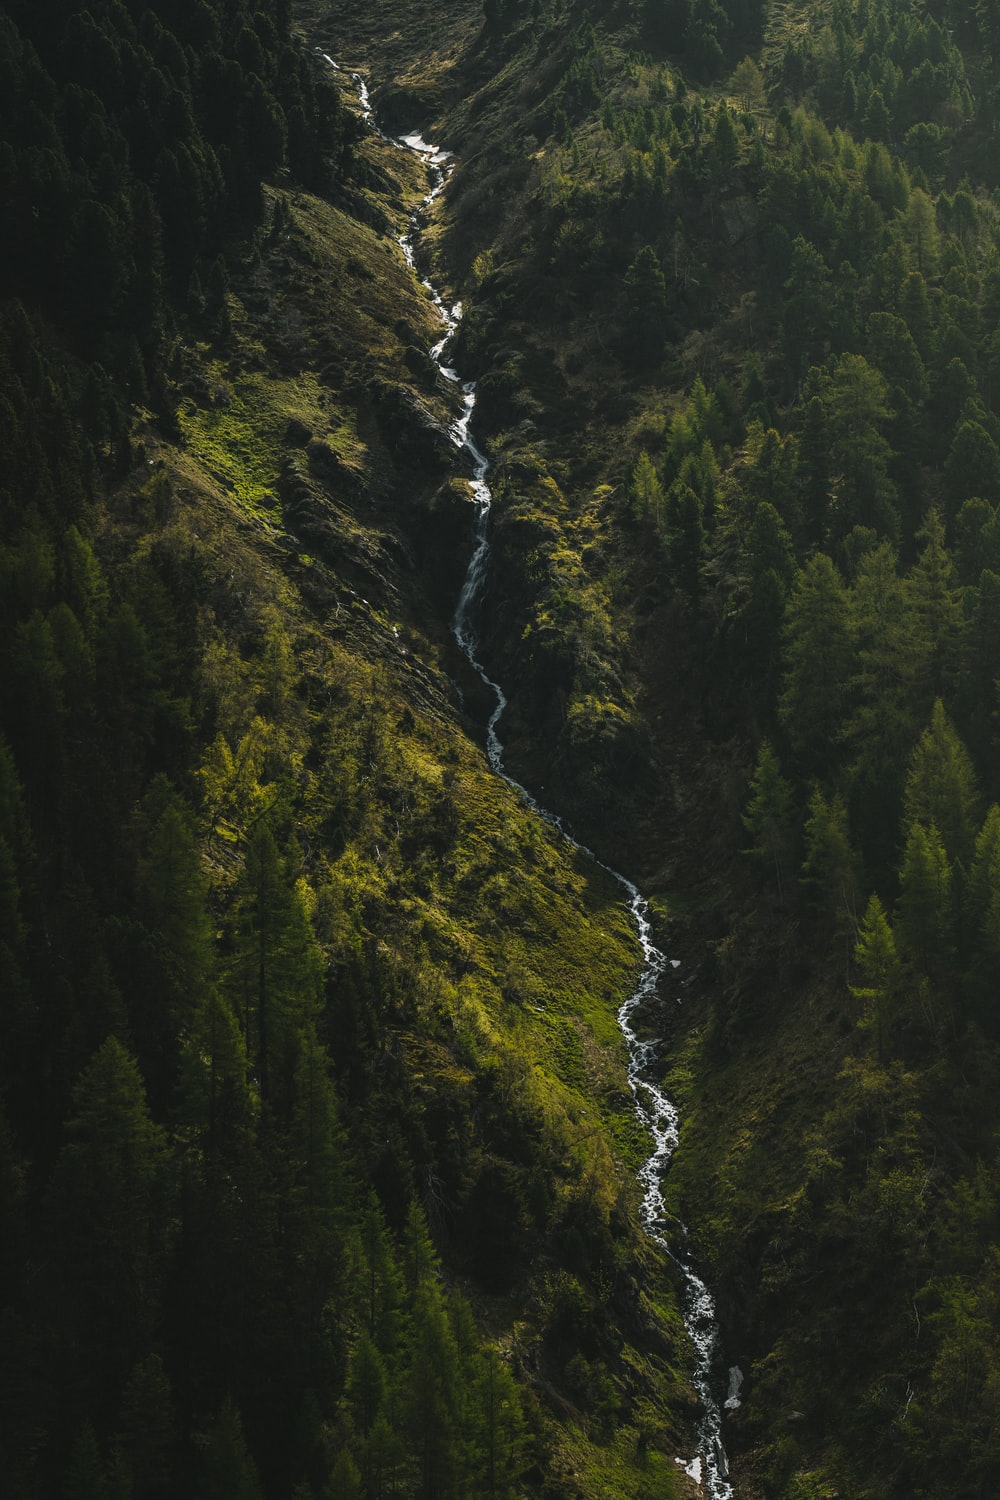 water falls in the middle of green and brown mountain